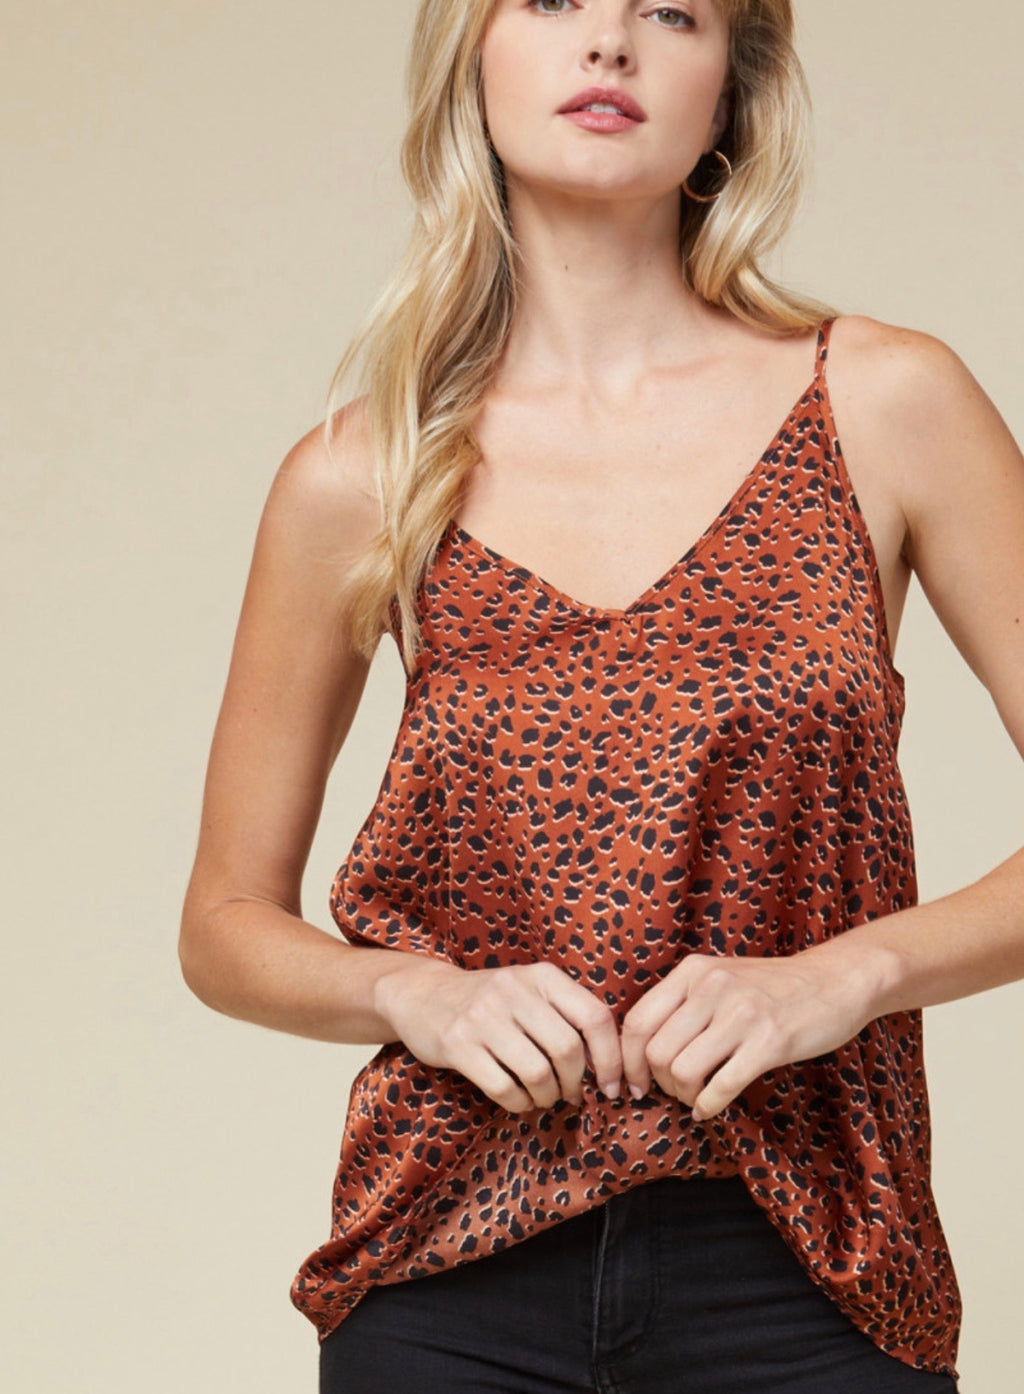 Thrill Of The Chase Satin Leopard Print Camisole - Copper